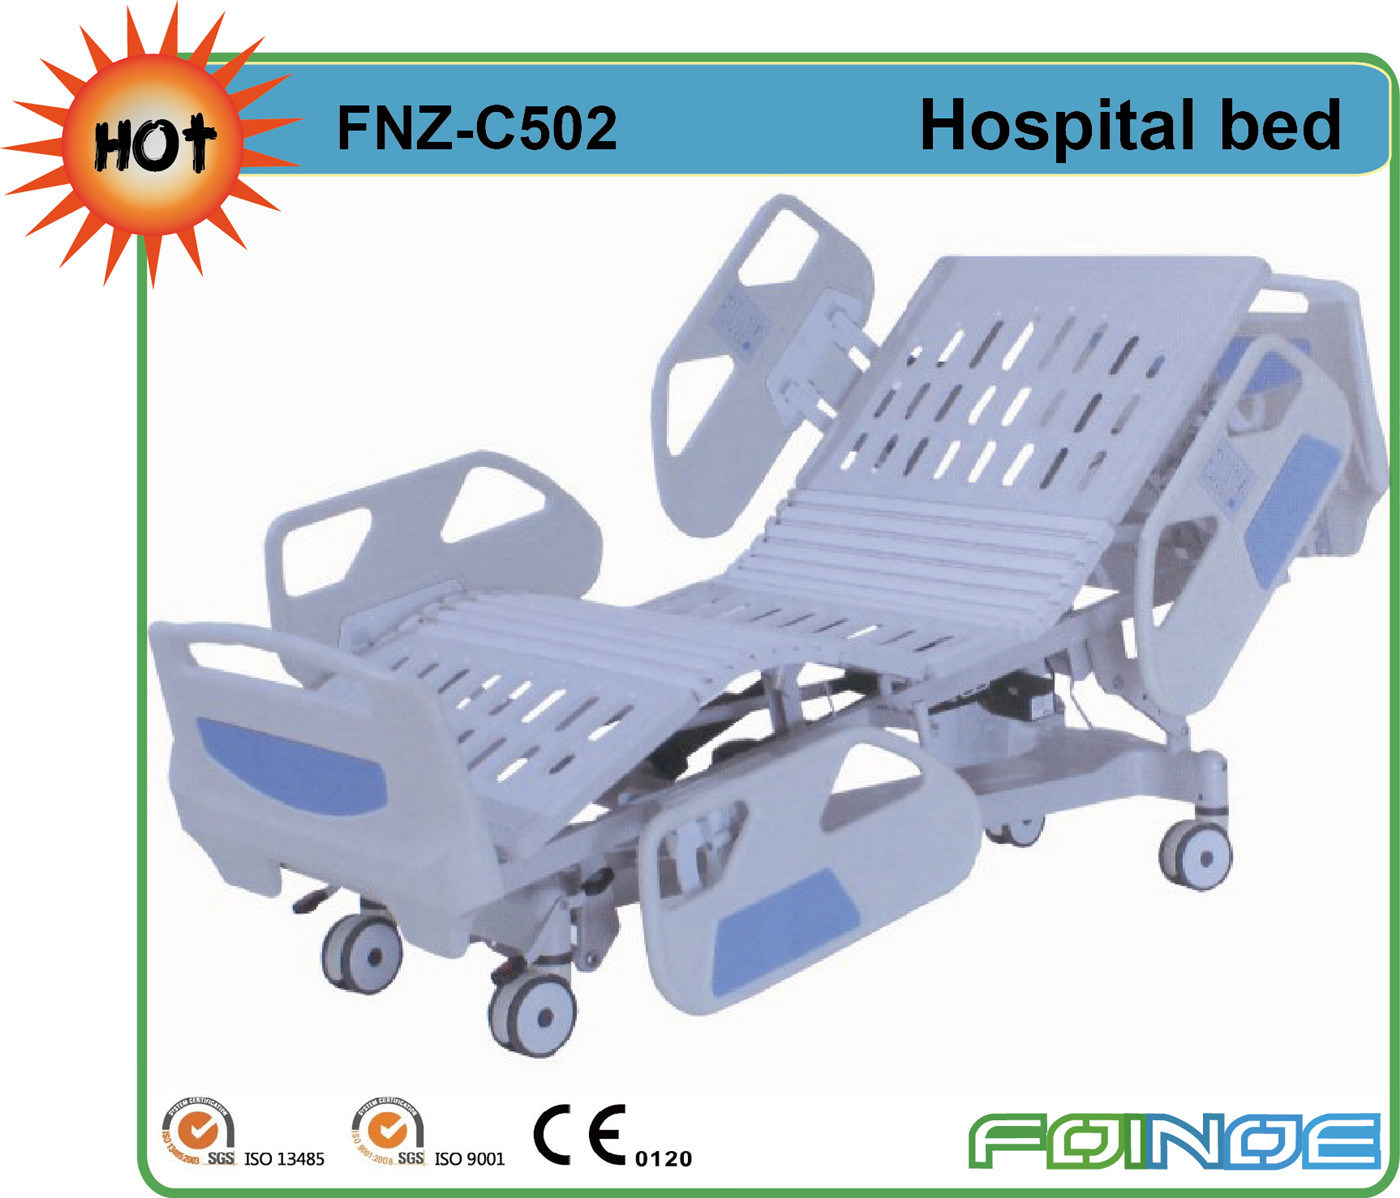 Fnz-C502 Home Medical Hospital Bed